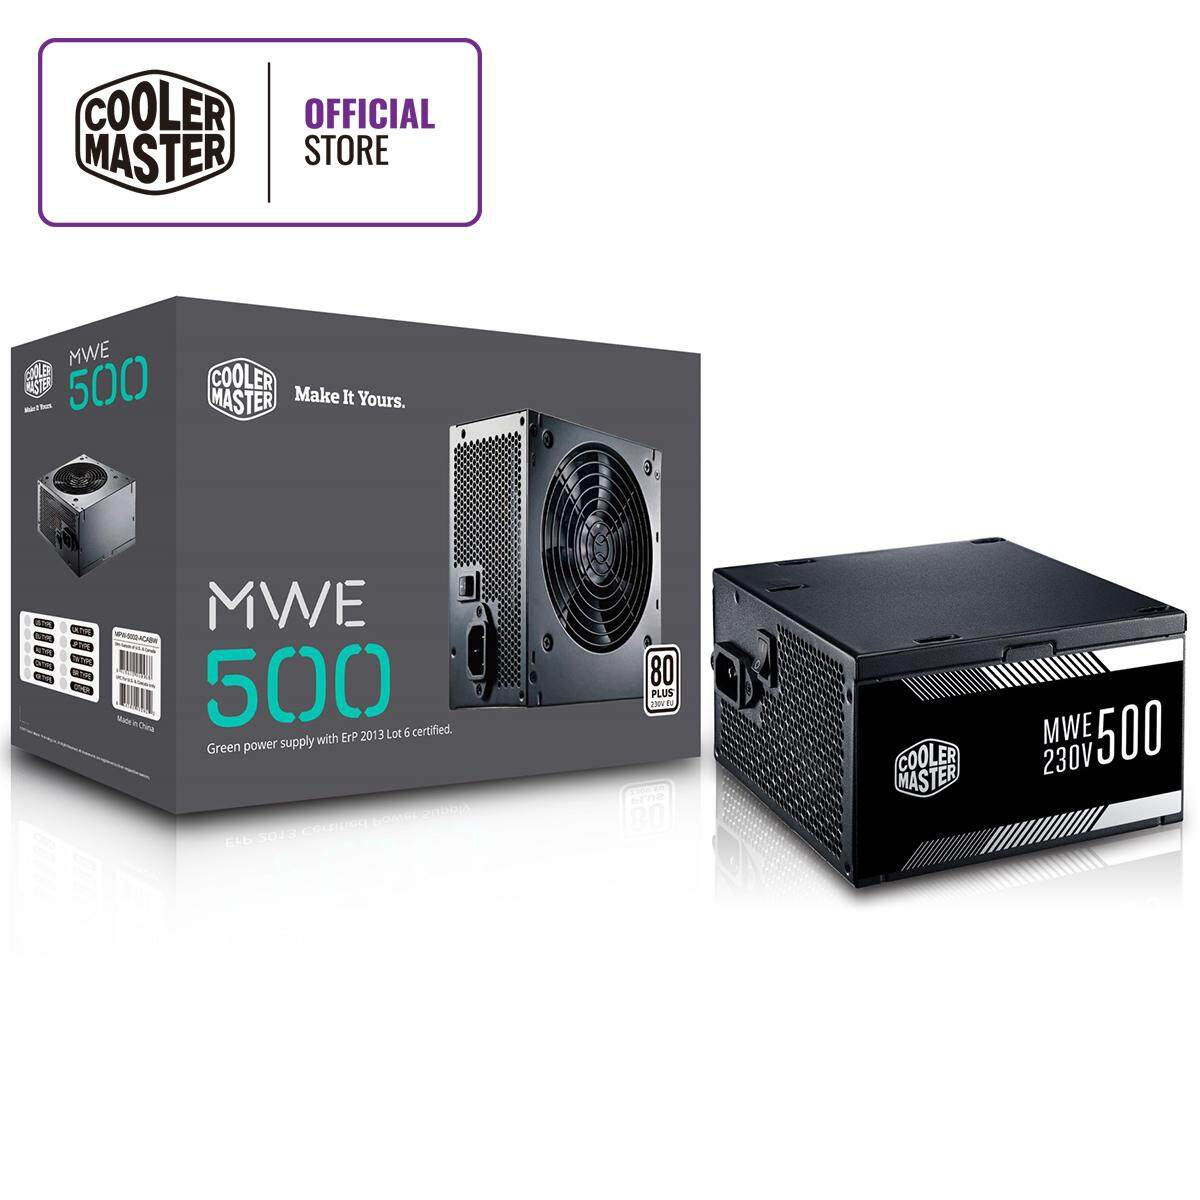 Cooler Master Mwe 500 (80 Plus 230v Eu Certified) By Cooler Master Malaysia.